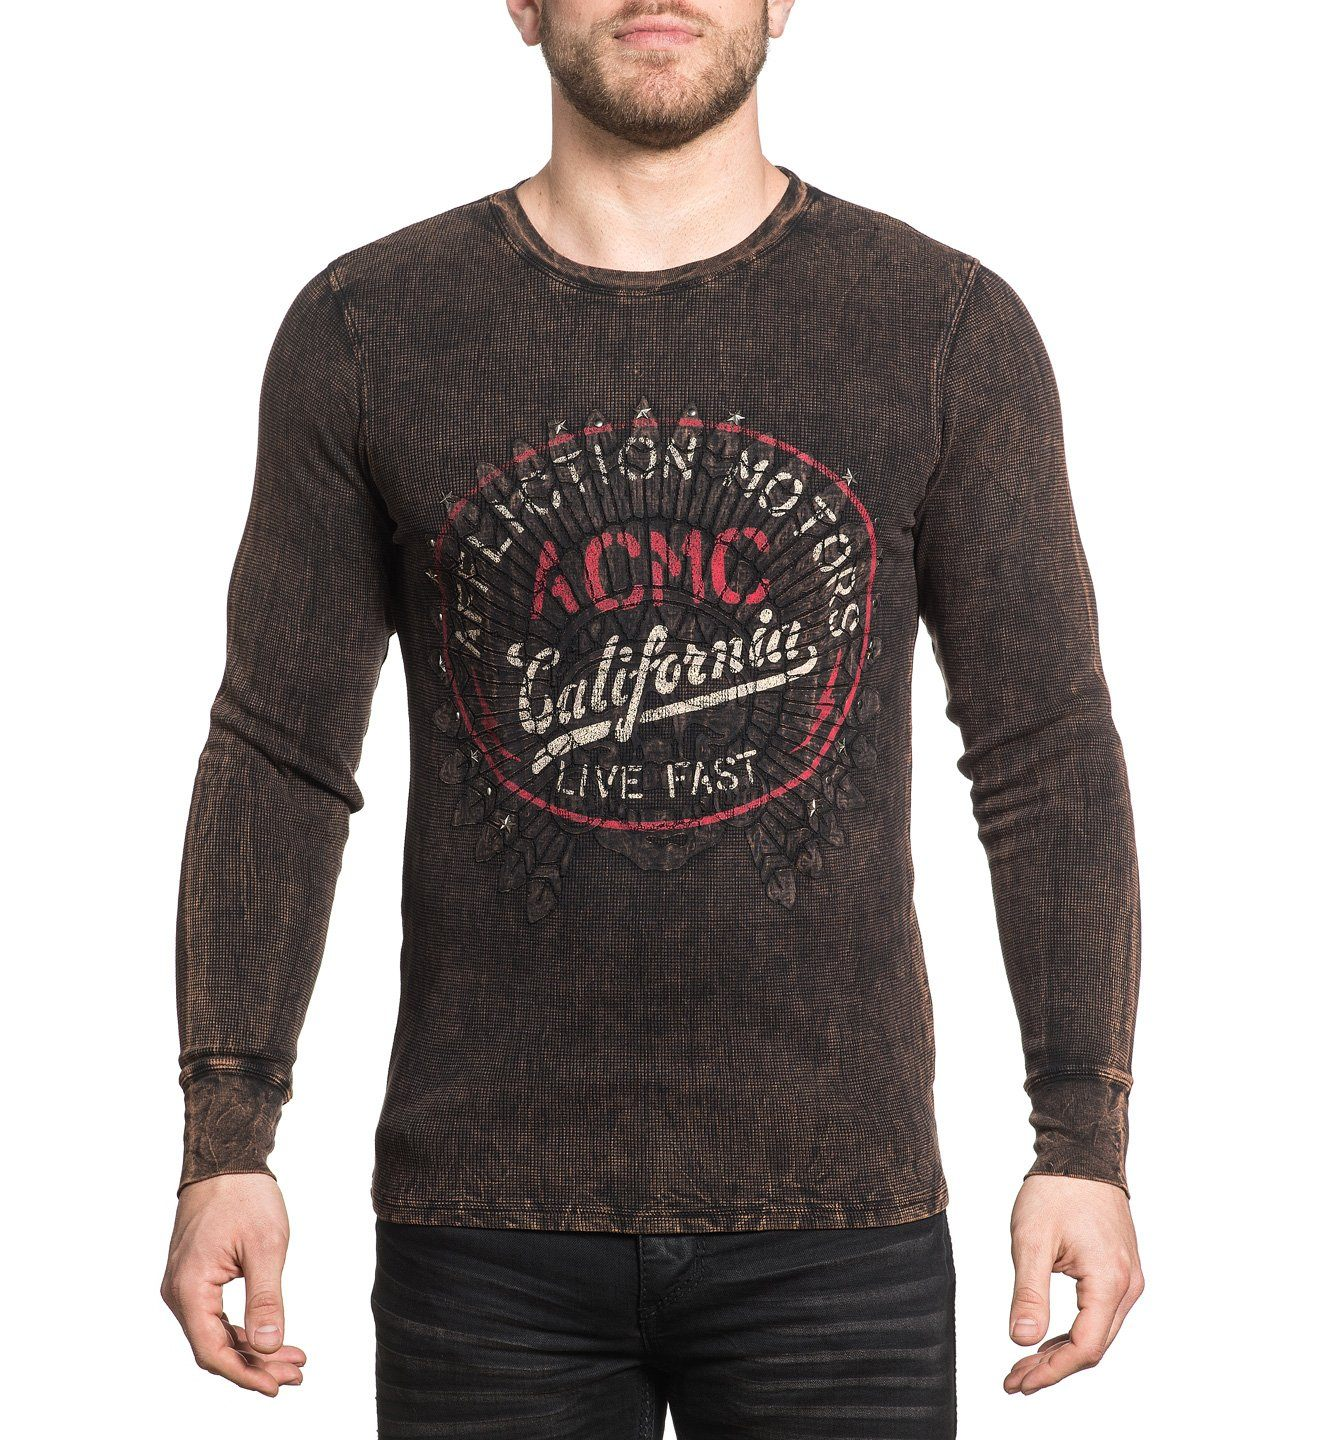 Screamin Eagle - Mens Long Sleeve Tees - Affliction Clothing